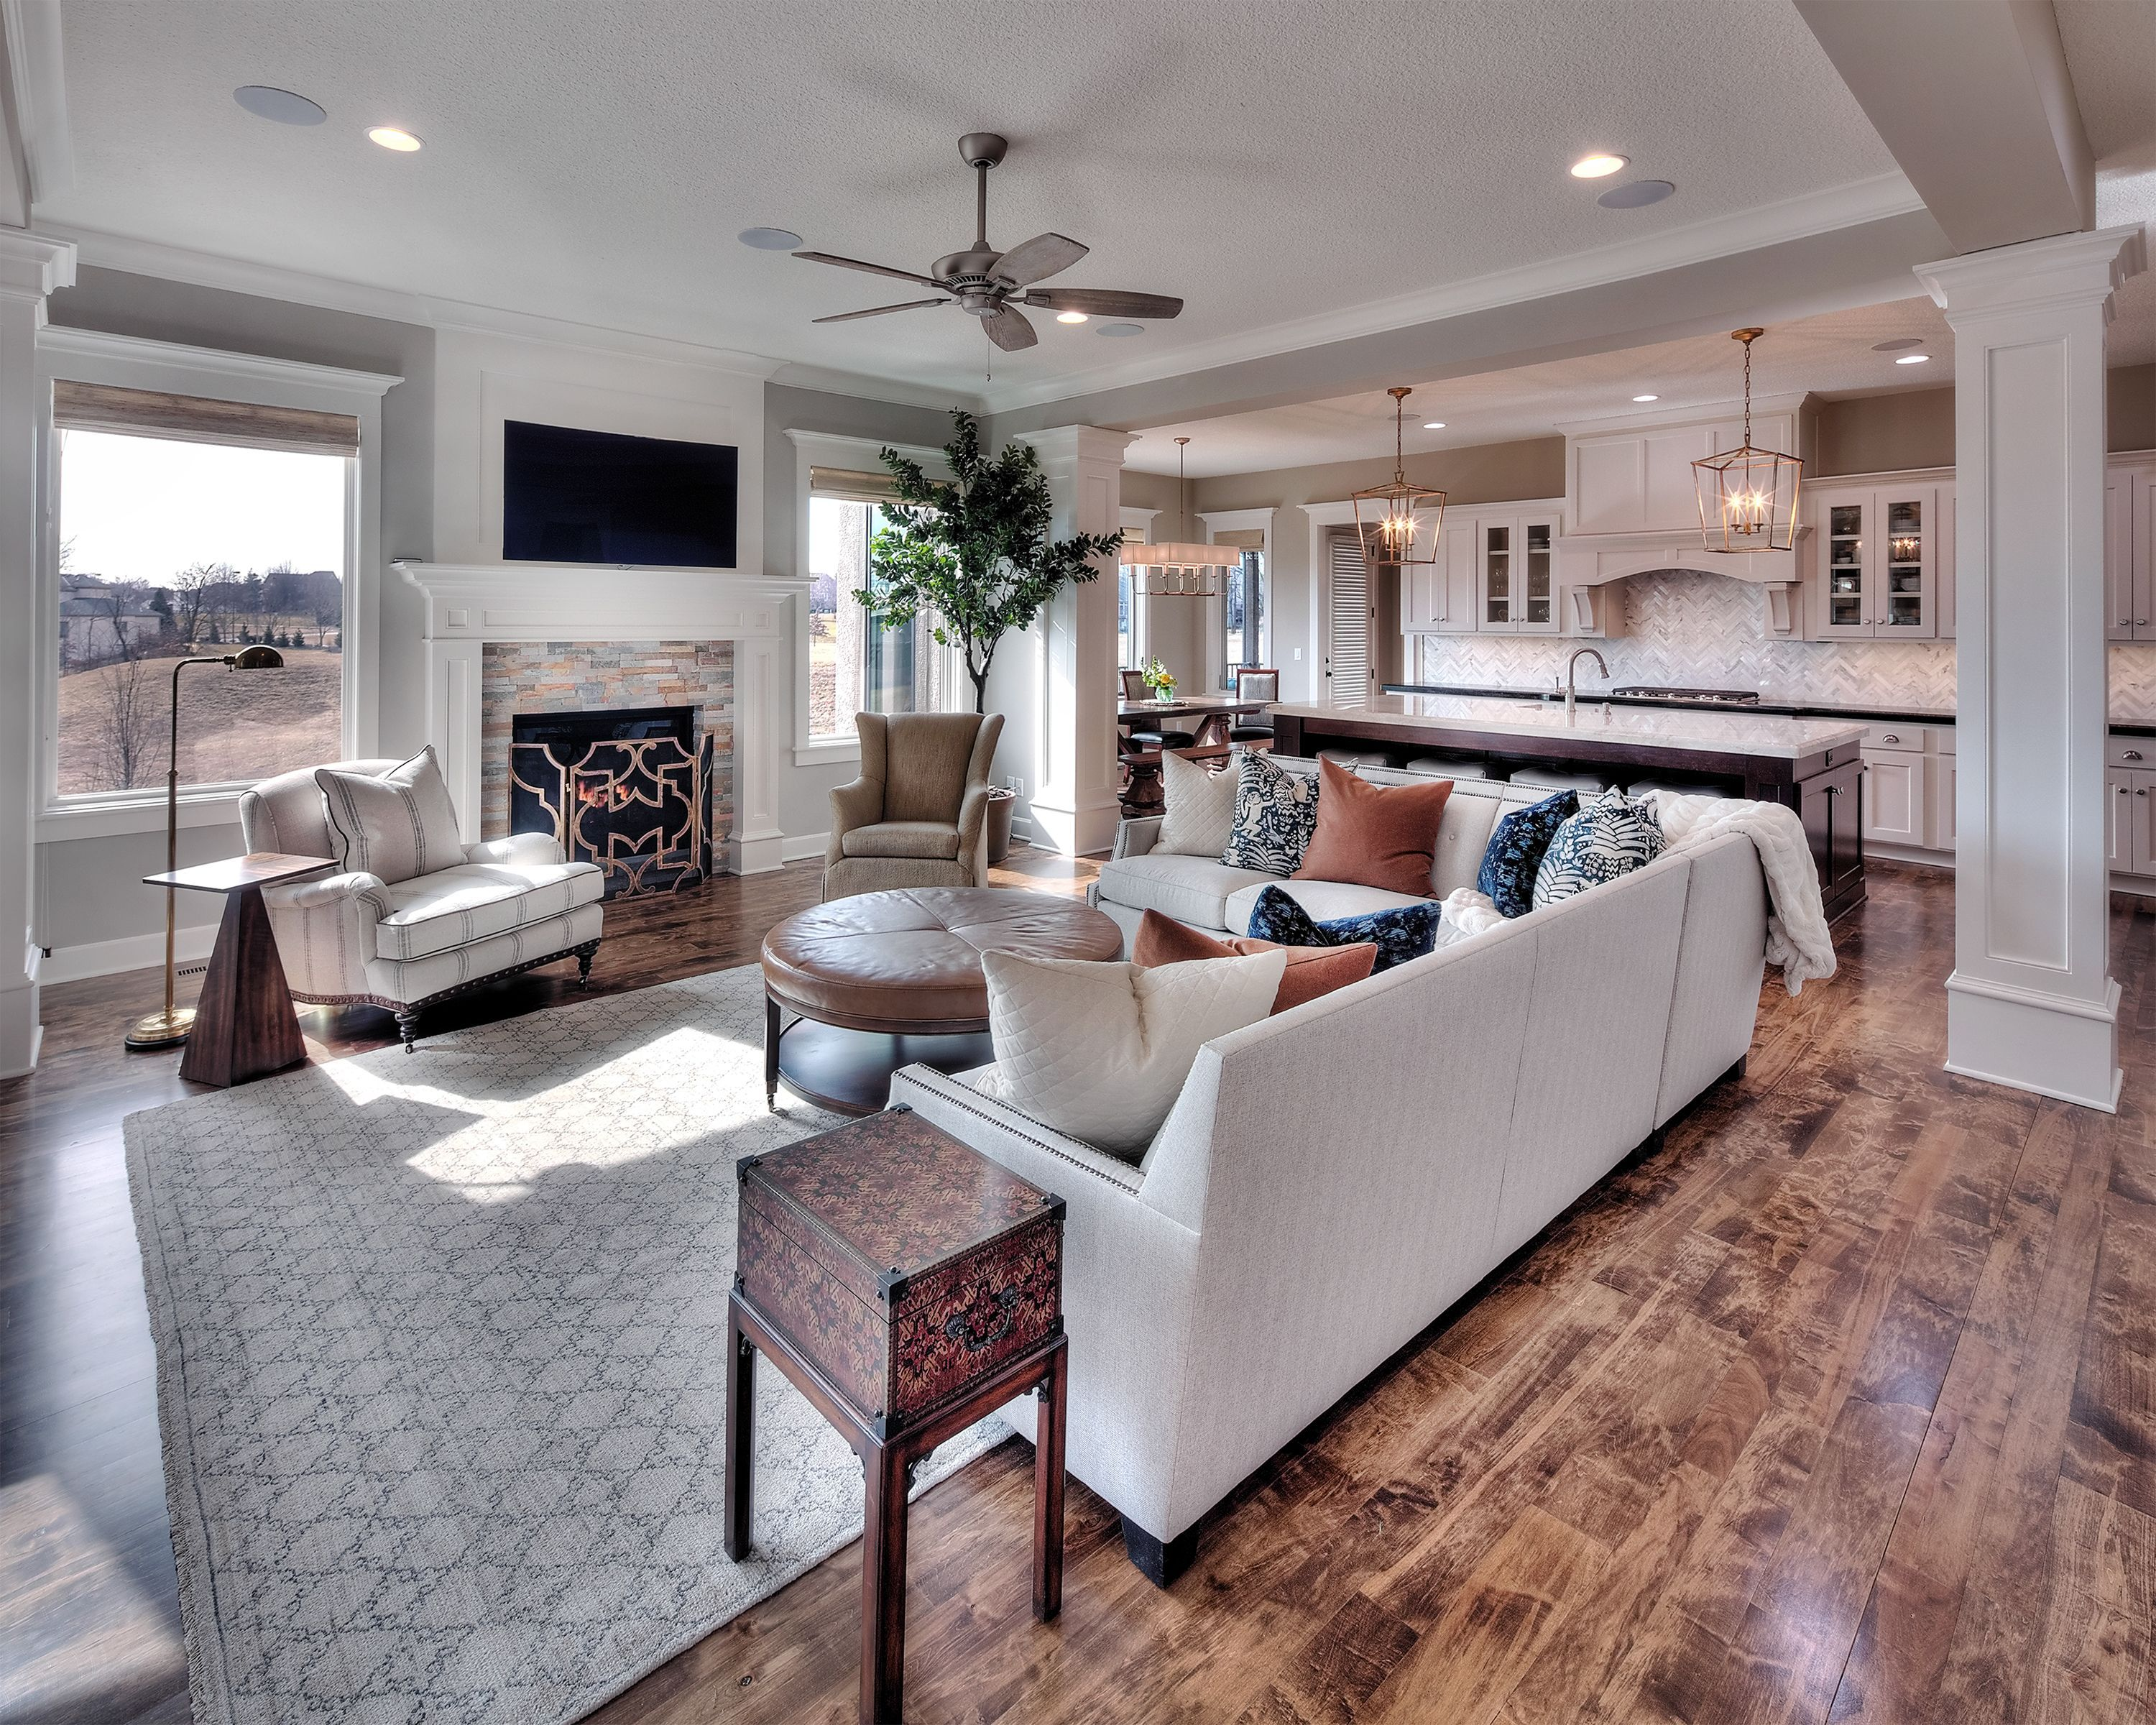 Open Floor Plan Kitchen Living Room Dining Room Family Room Mounted Tv With A Open Concept Kitchen Living Room Open Concept Living Room Open Floor Plan Kitchen